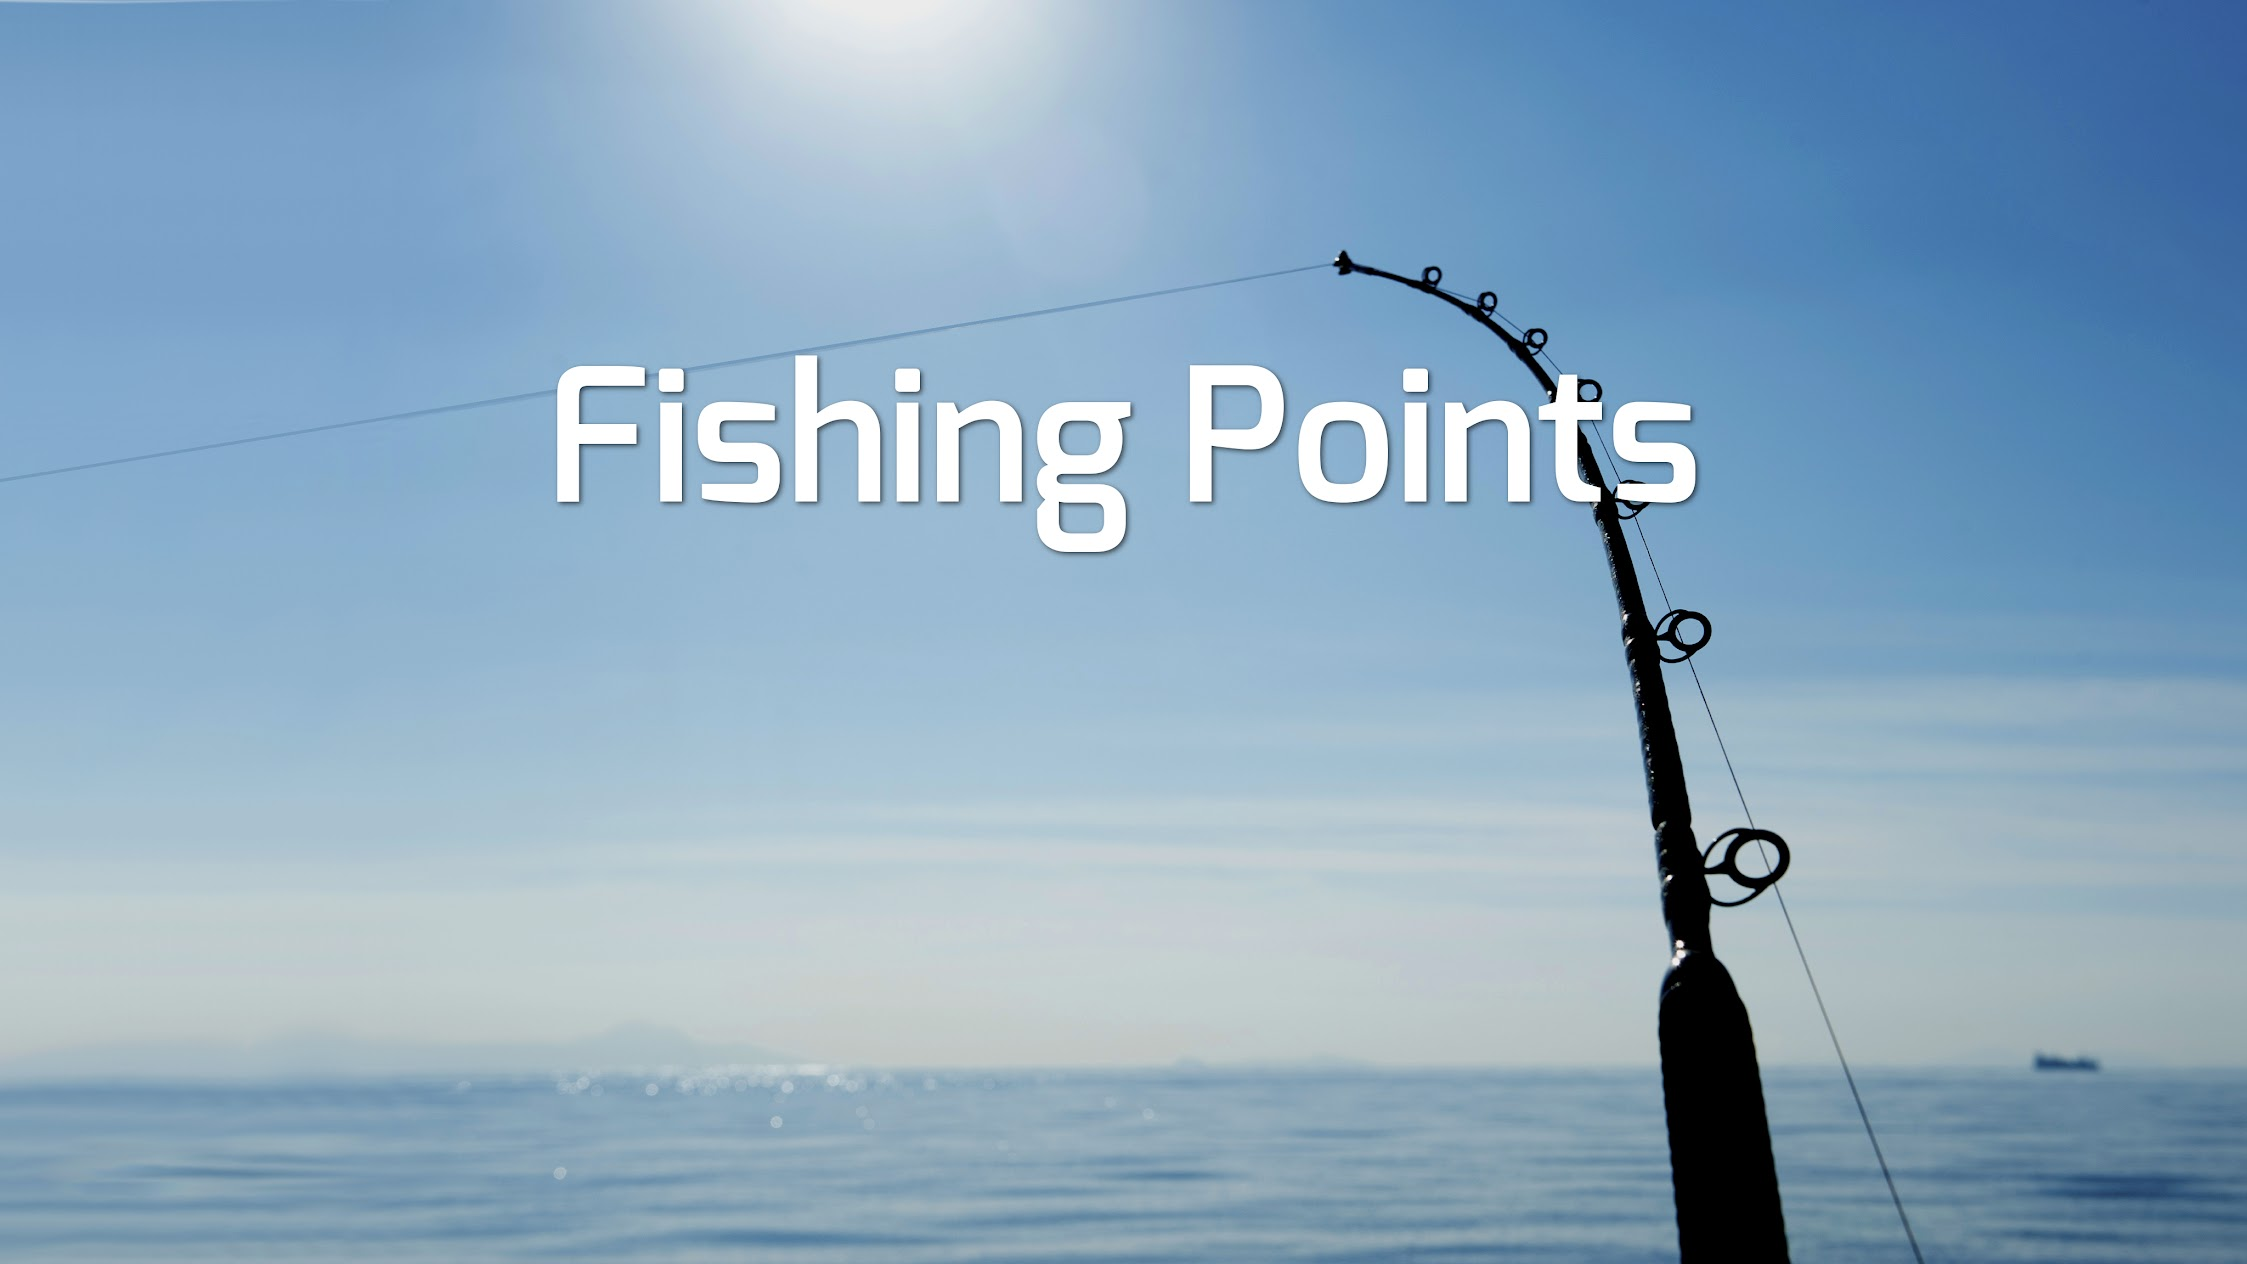 Fishing Points